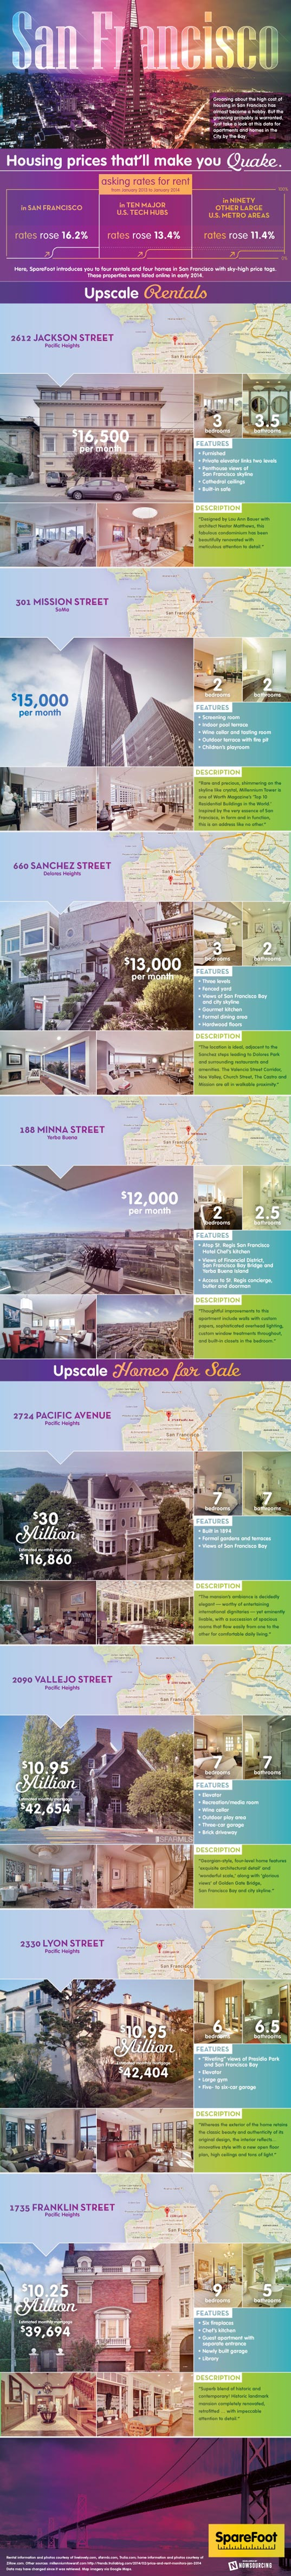 san francisco, housing prices, rents, cost of living, urban design, cities, housing costs, infographic, expensive housing, most expensive rent in us, us rent, highest housing costs